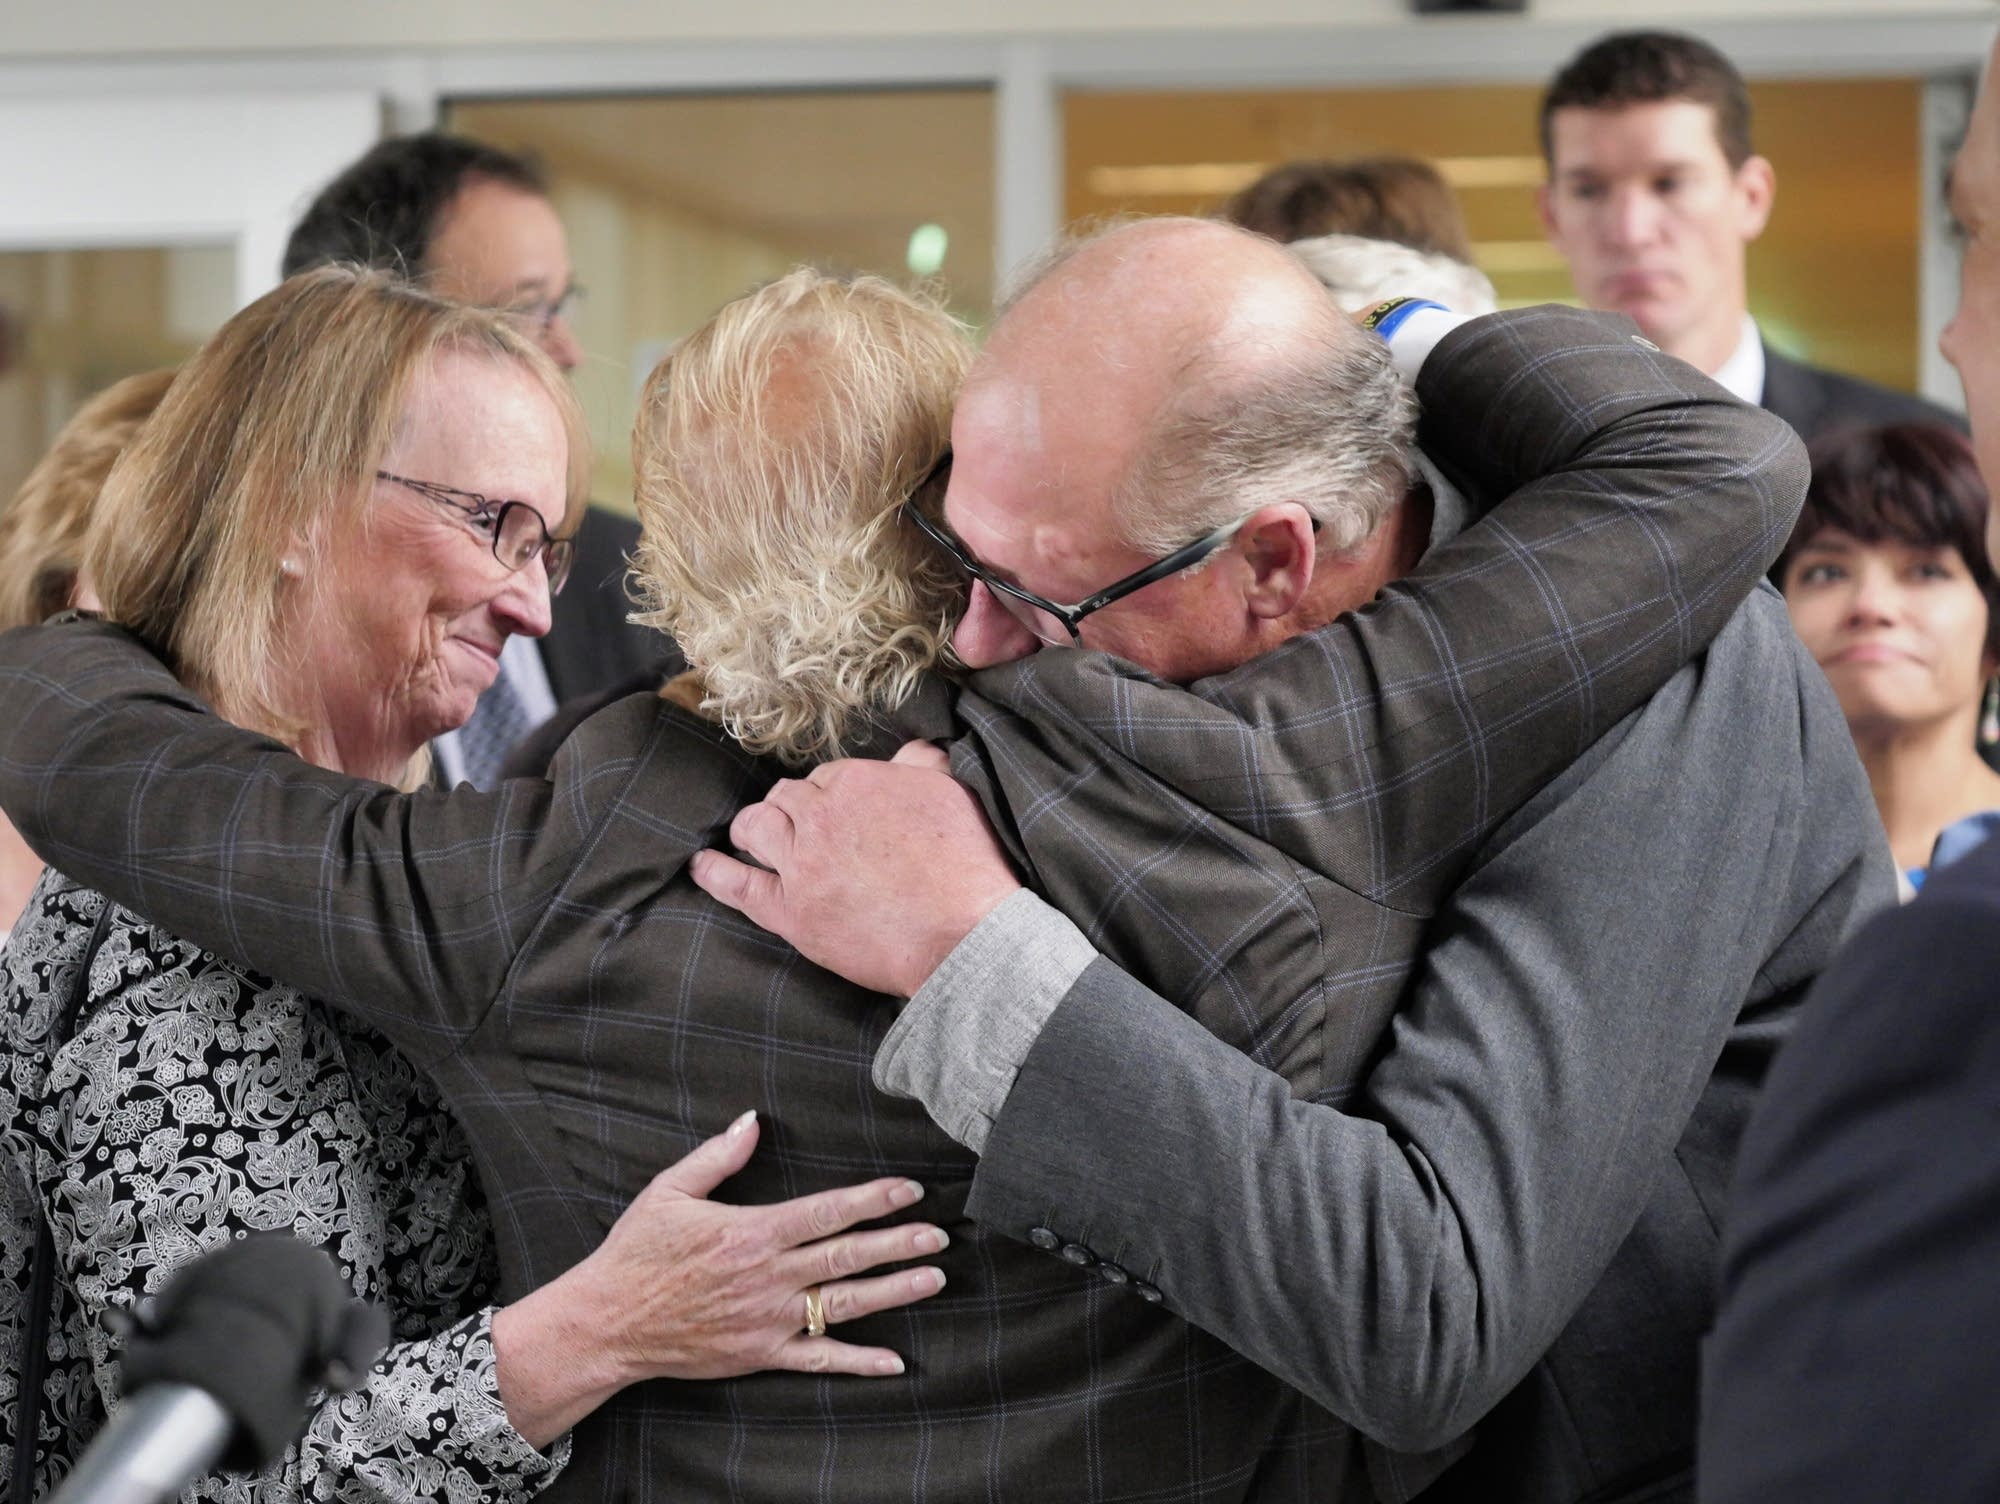 Victims' attorney Jeff Anderson, center, embraces his clients